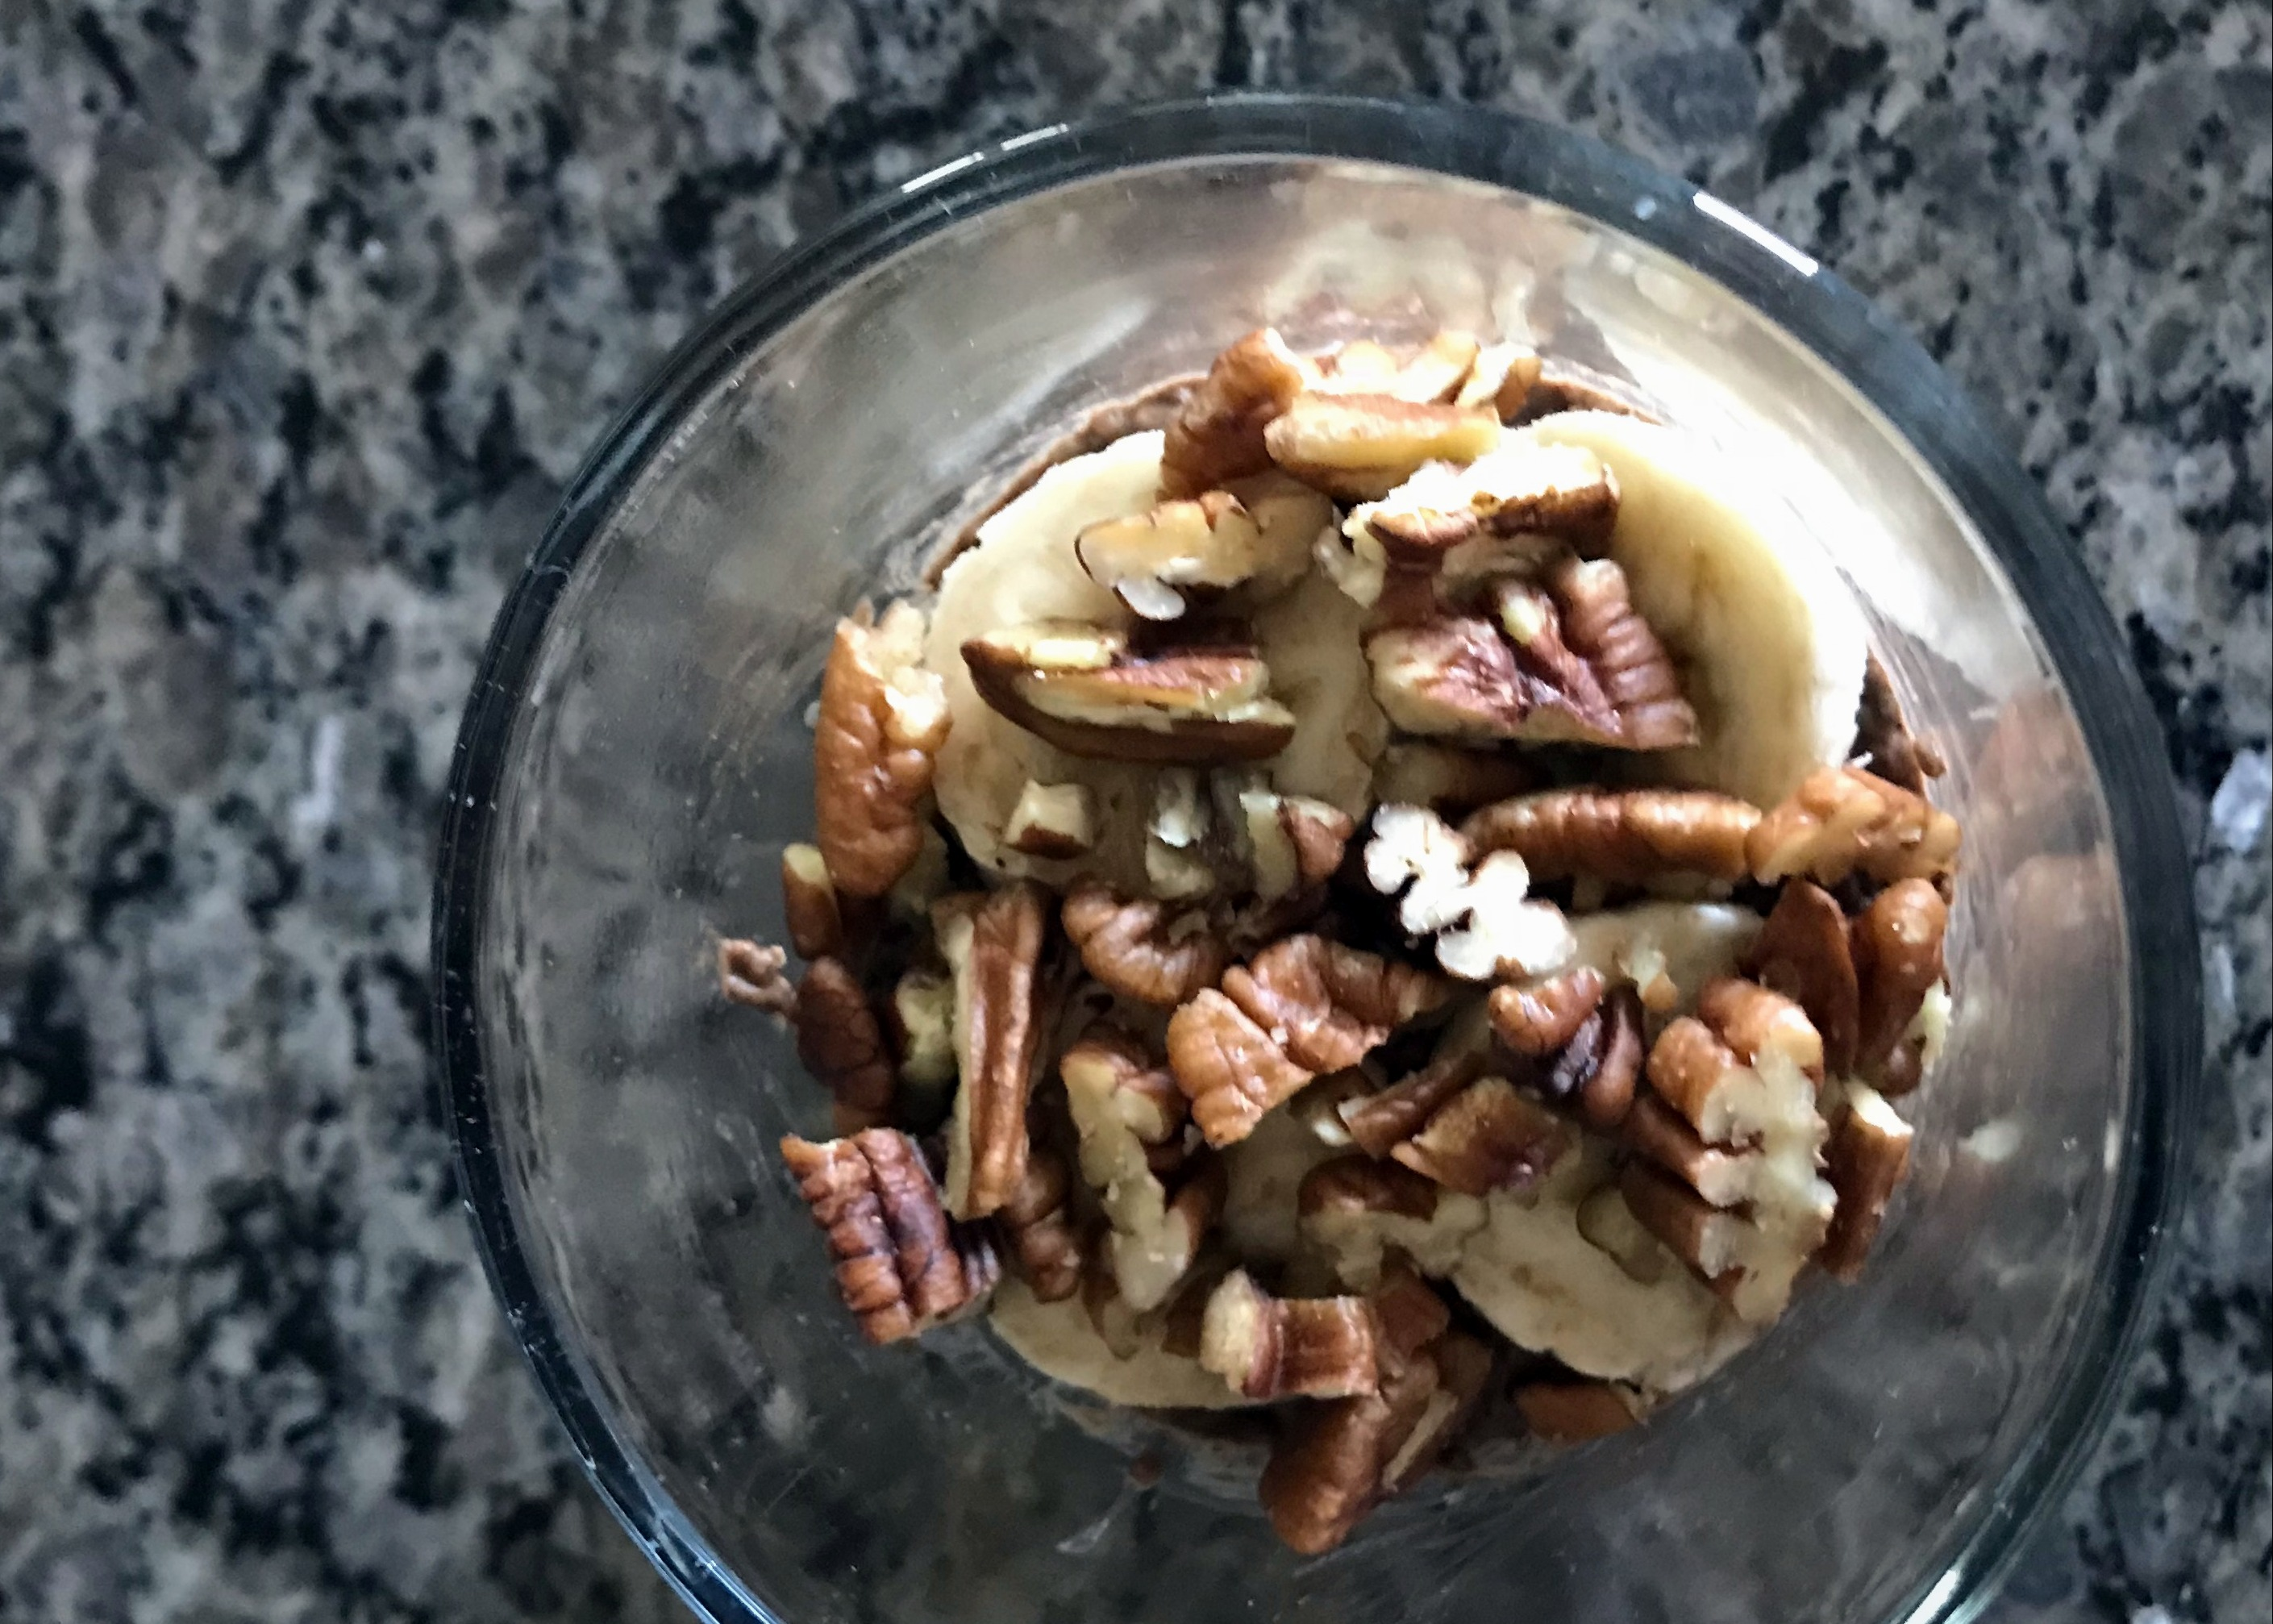 Paleo Protein Powder - Chocolate Banana Nut Chia Pudding Parfait